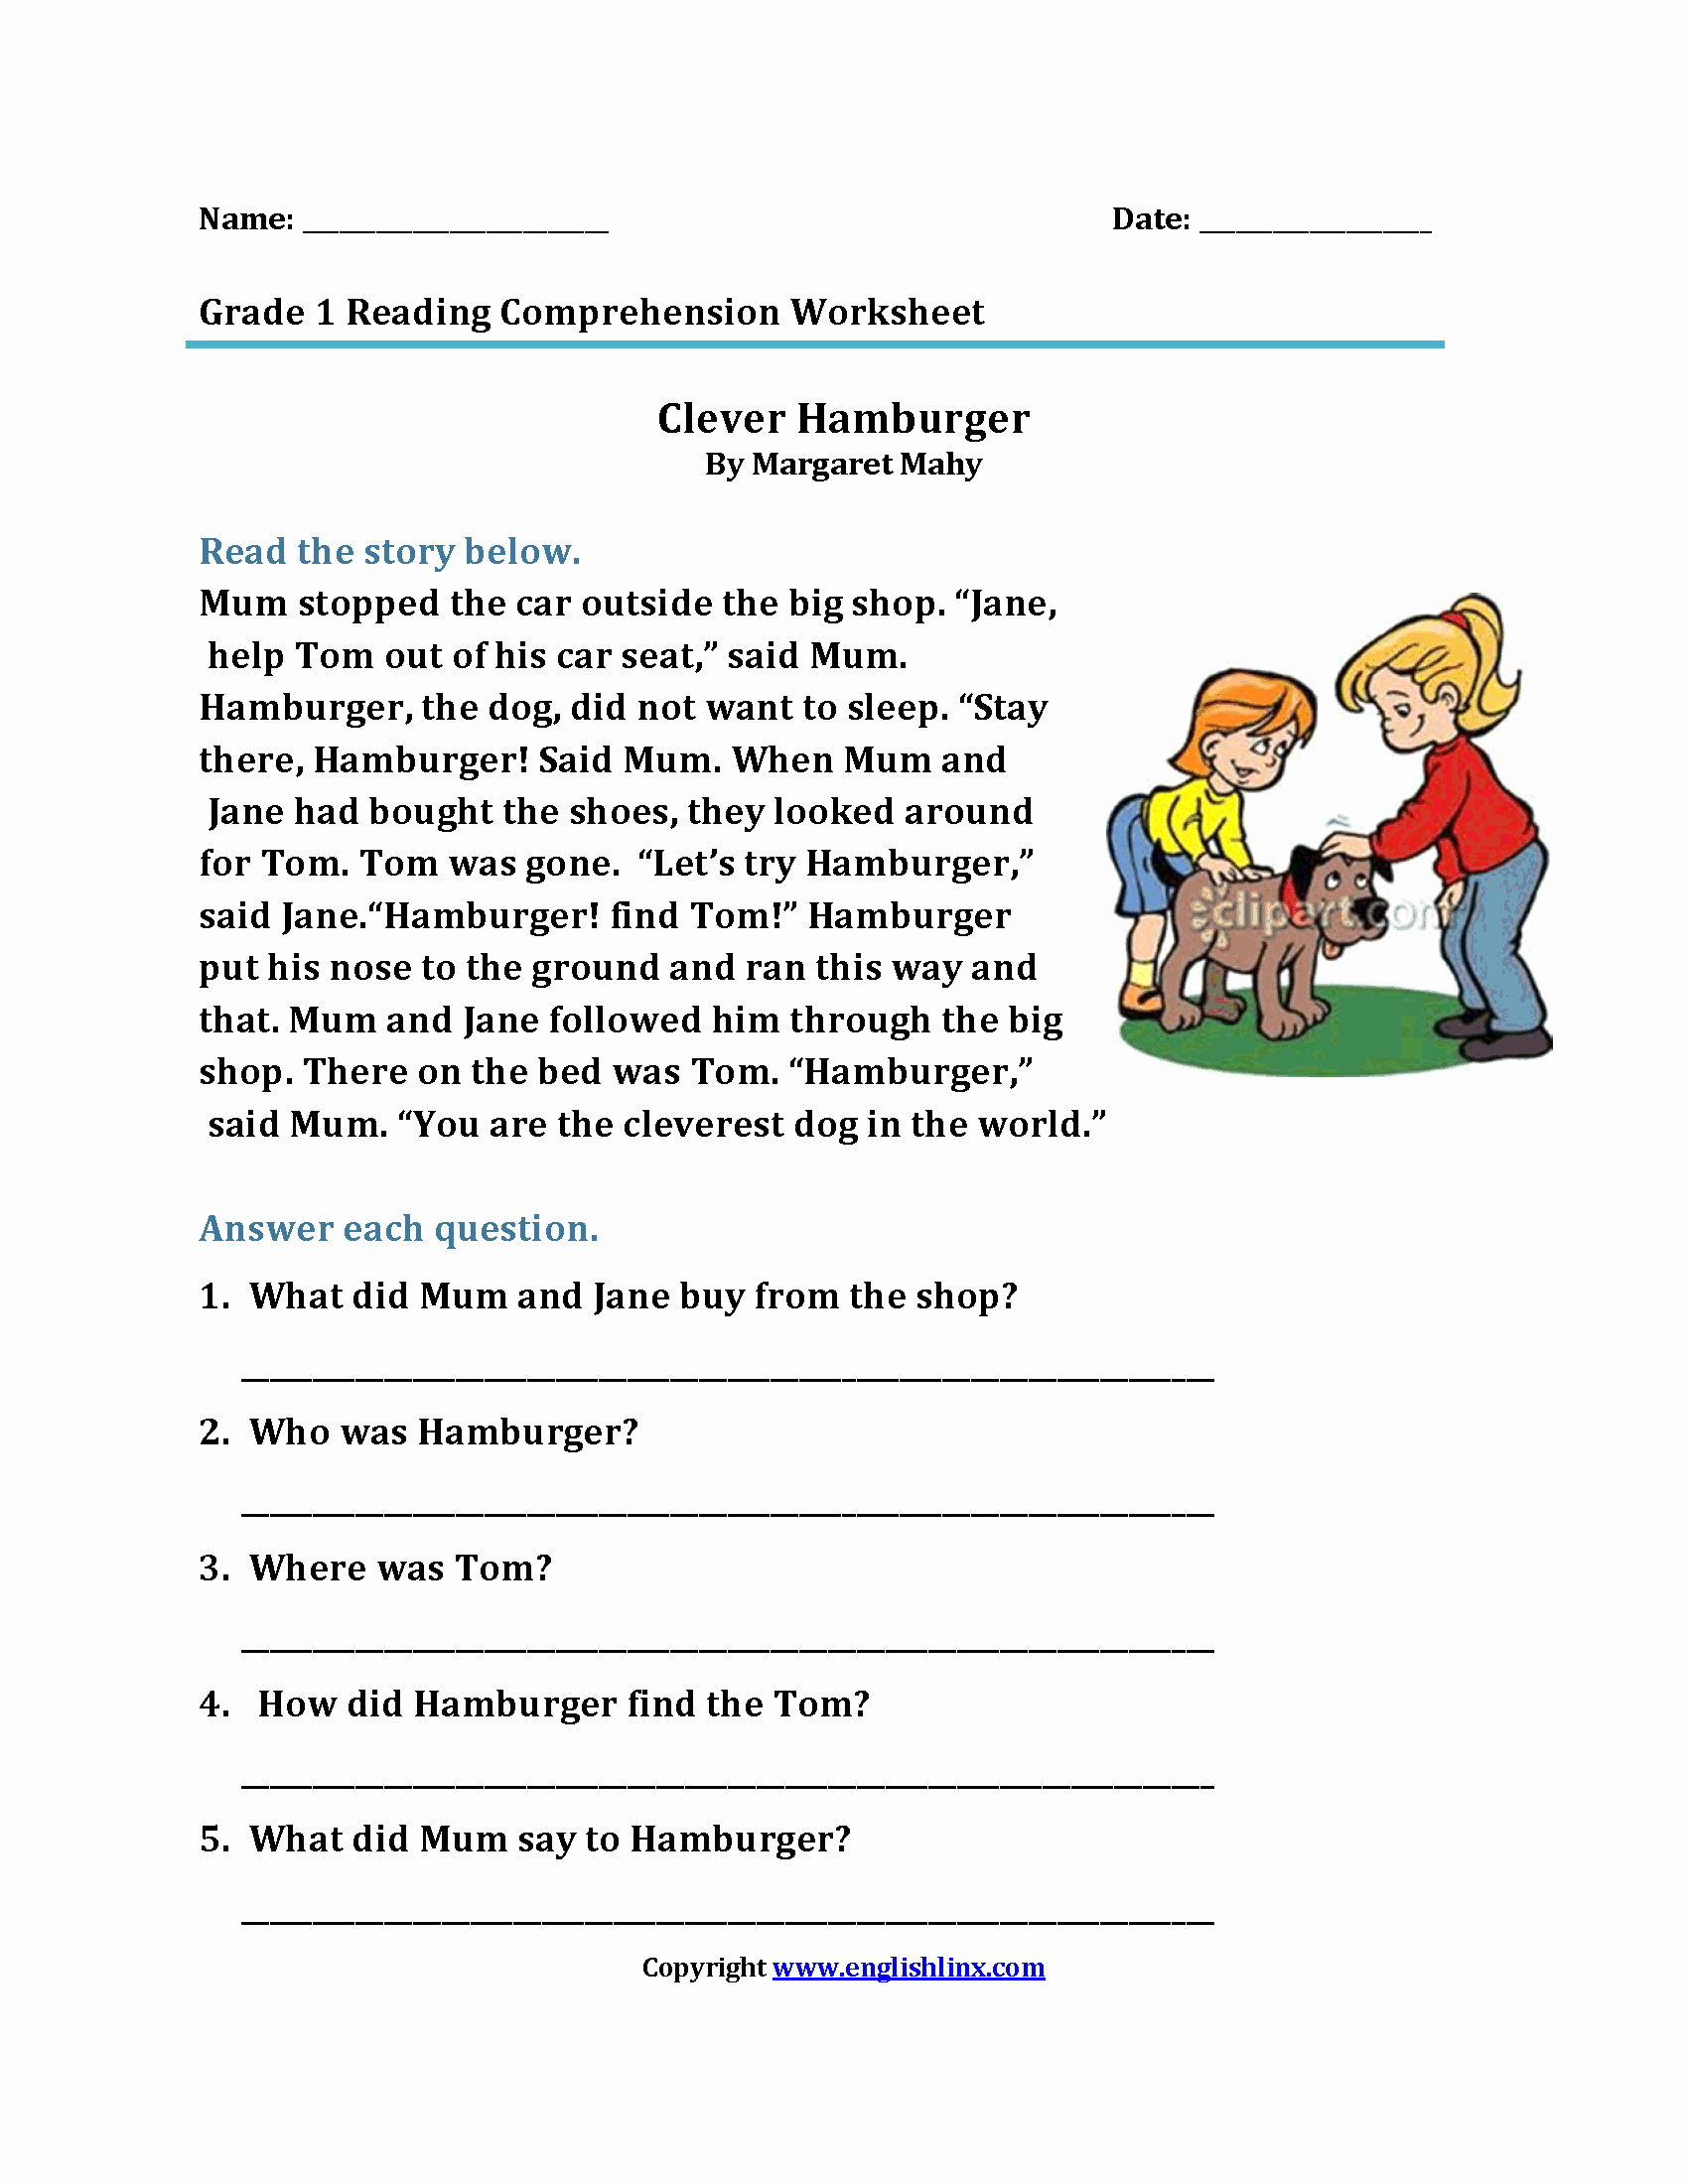 Comprehension Worksheet First Grade Inspirational English Prehension Passages for Grade 1 Step by Step